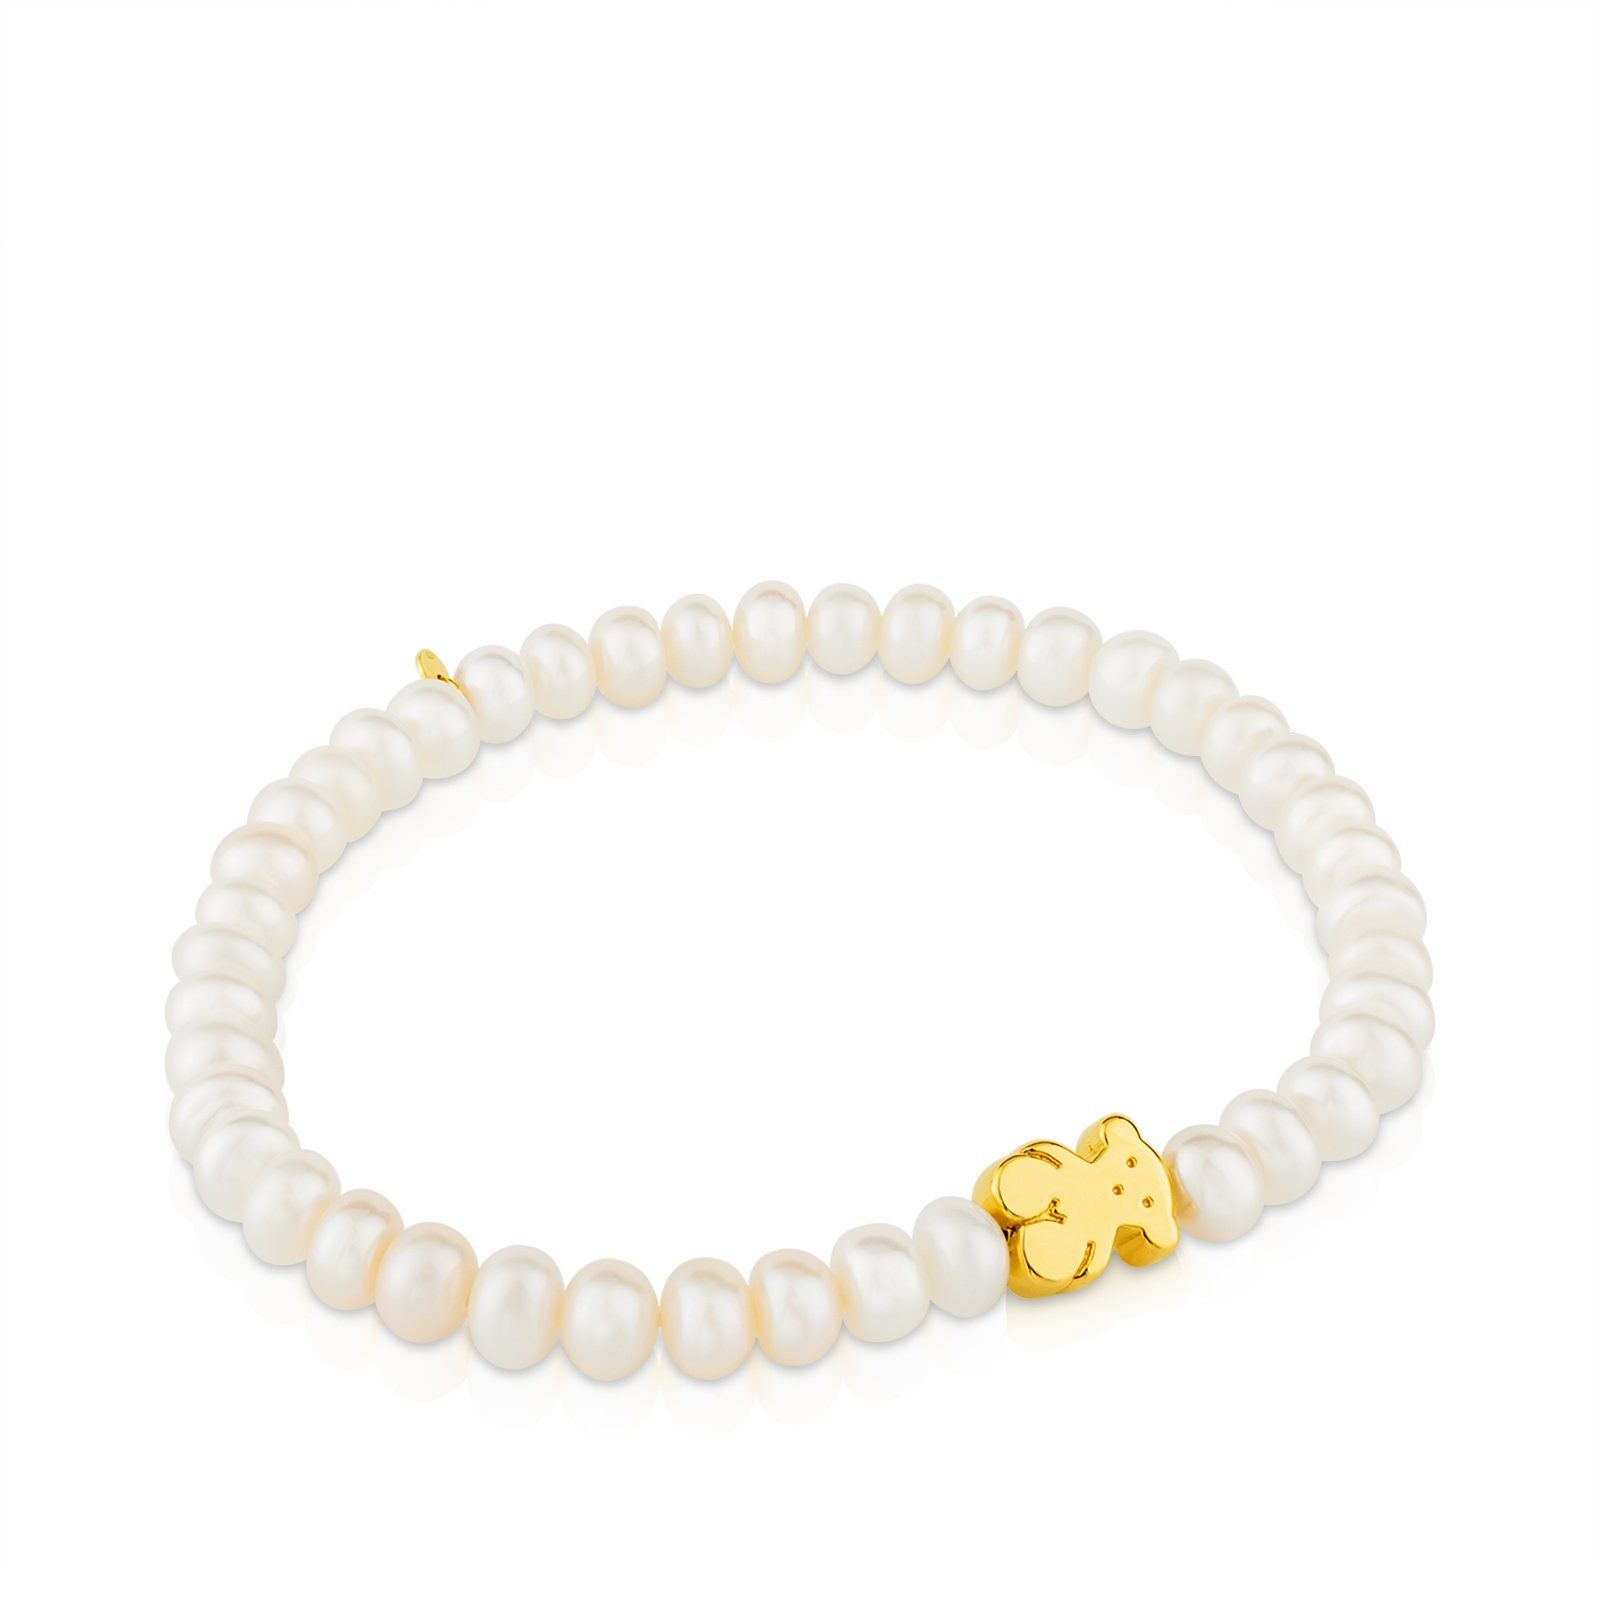 TOUS Sweet Dolls Yellow-Gold 18k Stretch Bracelet with White Chinese-Freshwater-Cultured Pearl 5.0 mm by TOUS